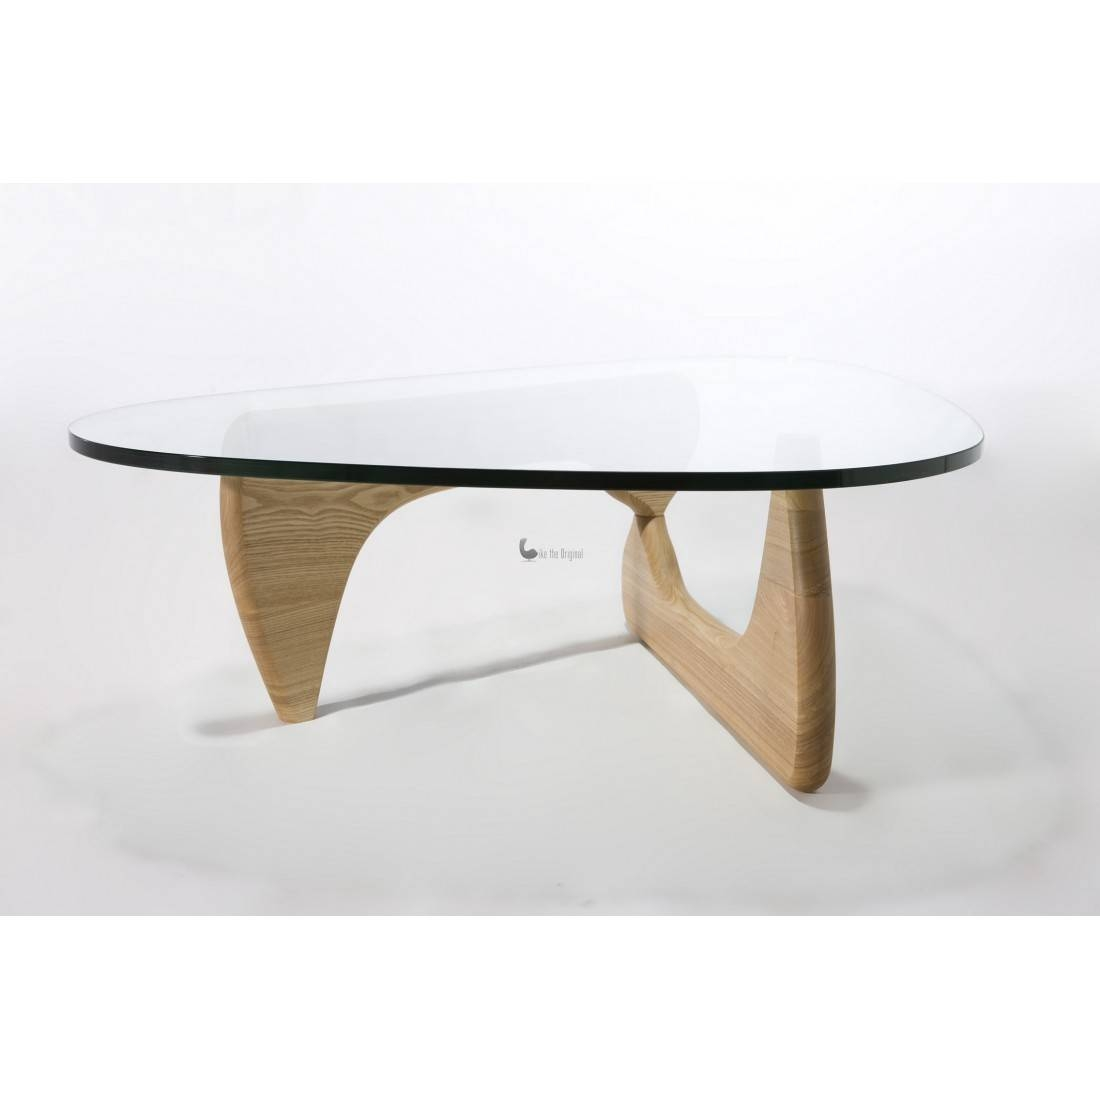 Noguchi Coffee Table | Home Designjohn throughout Tribeca Coffee Tables (Image 13 of 30)